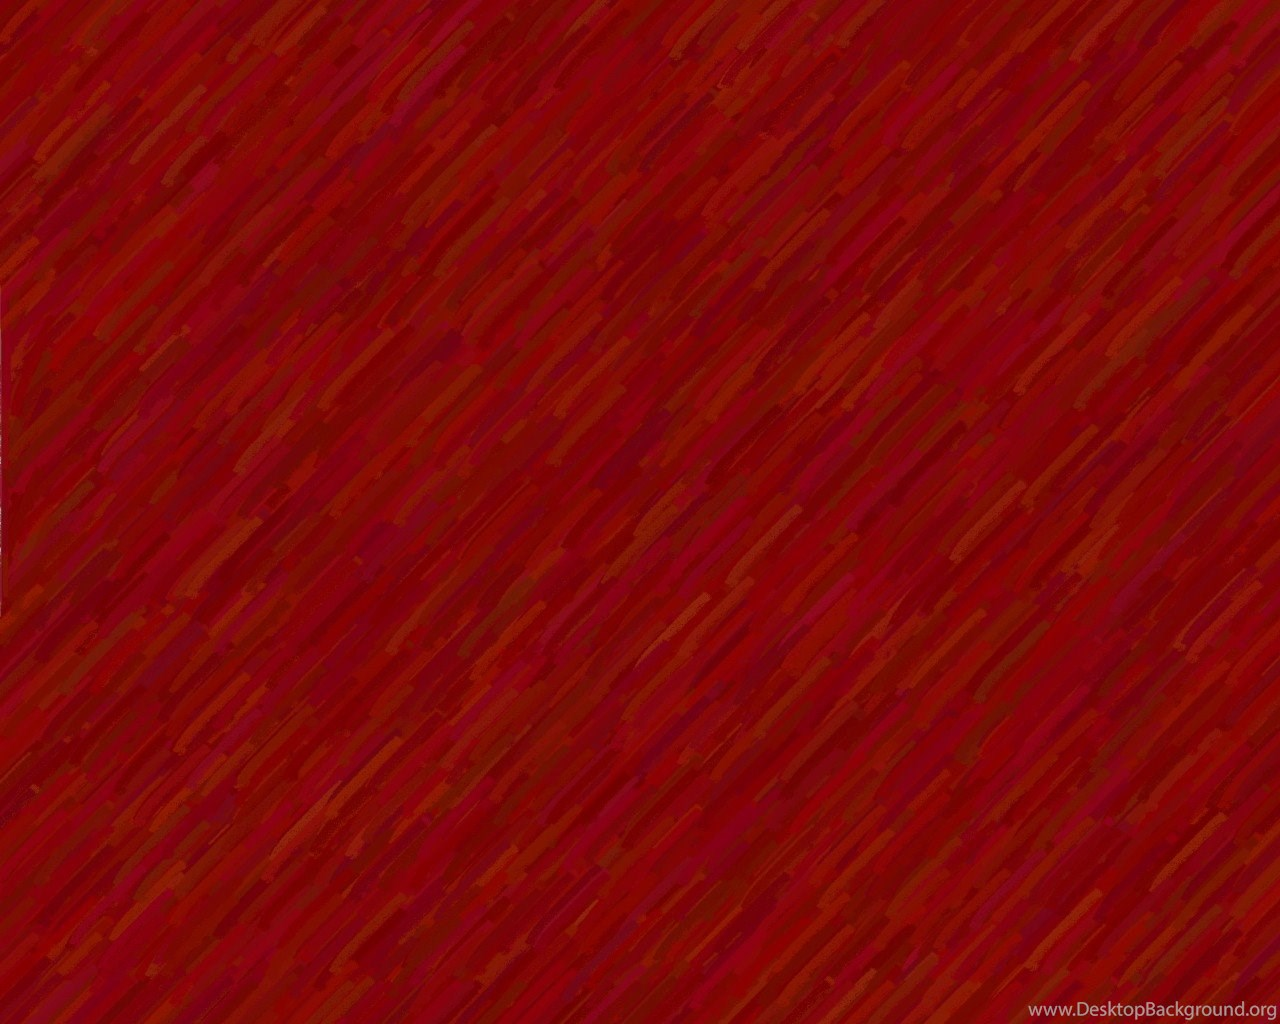 maroon backgrounds hd wallpapers on picsfair com desktop background maroon backgrounds hd wallpapers on